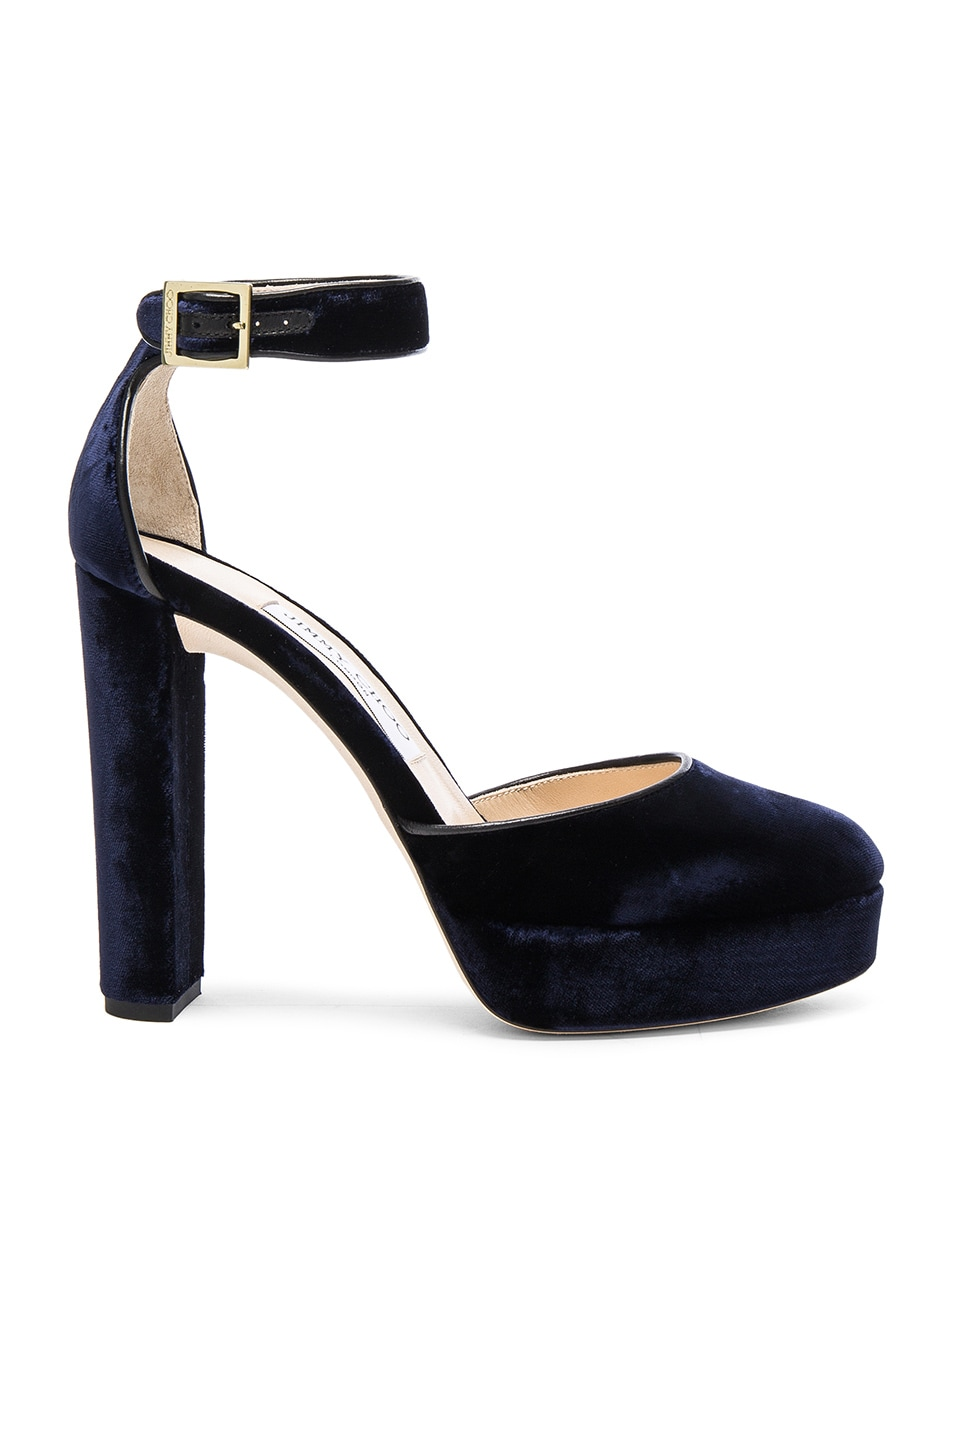 0c7d170acacb Image 1 of Jimmy Choo Velvet Daphne Heels in Navy